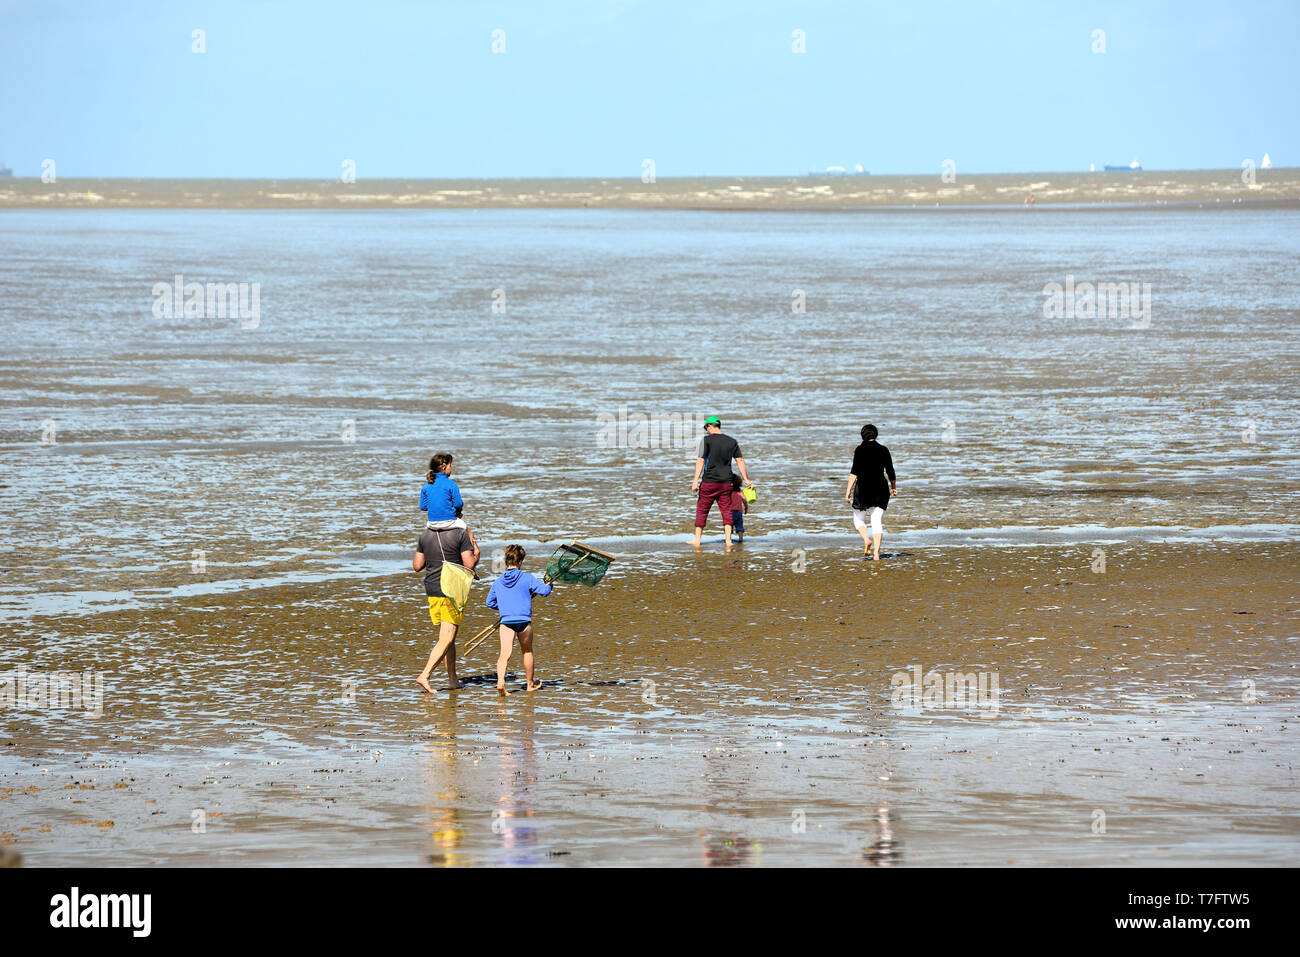 Chatelaillon-Plage (central-western France): people fishing from the shore at low tide - Stock Image